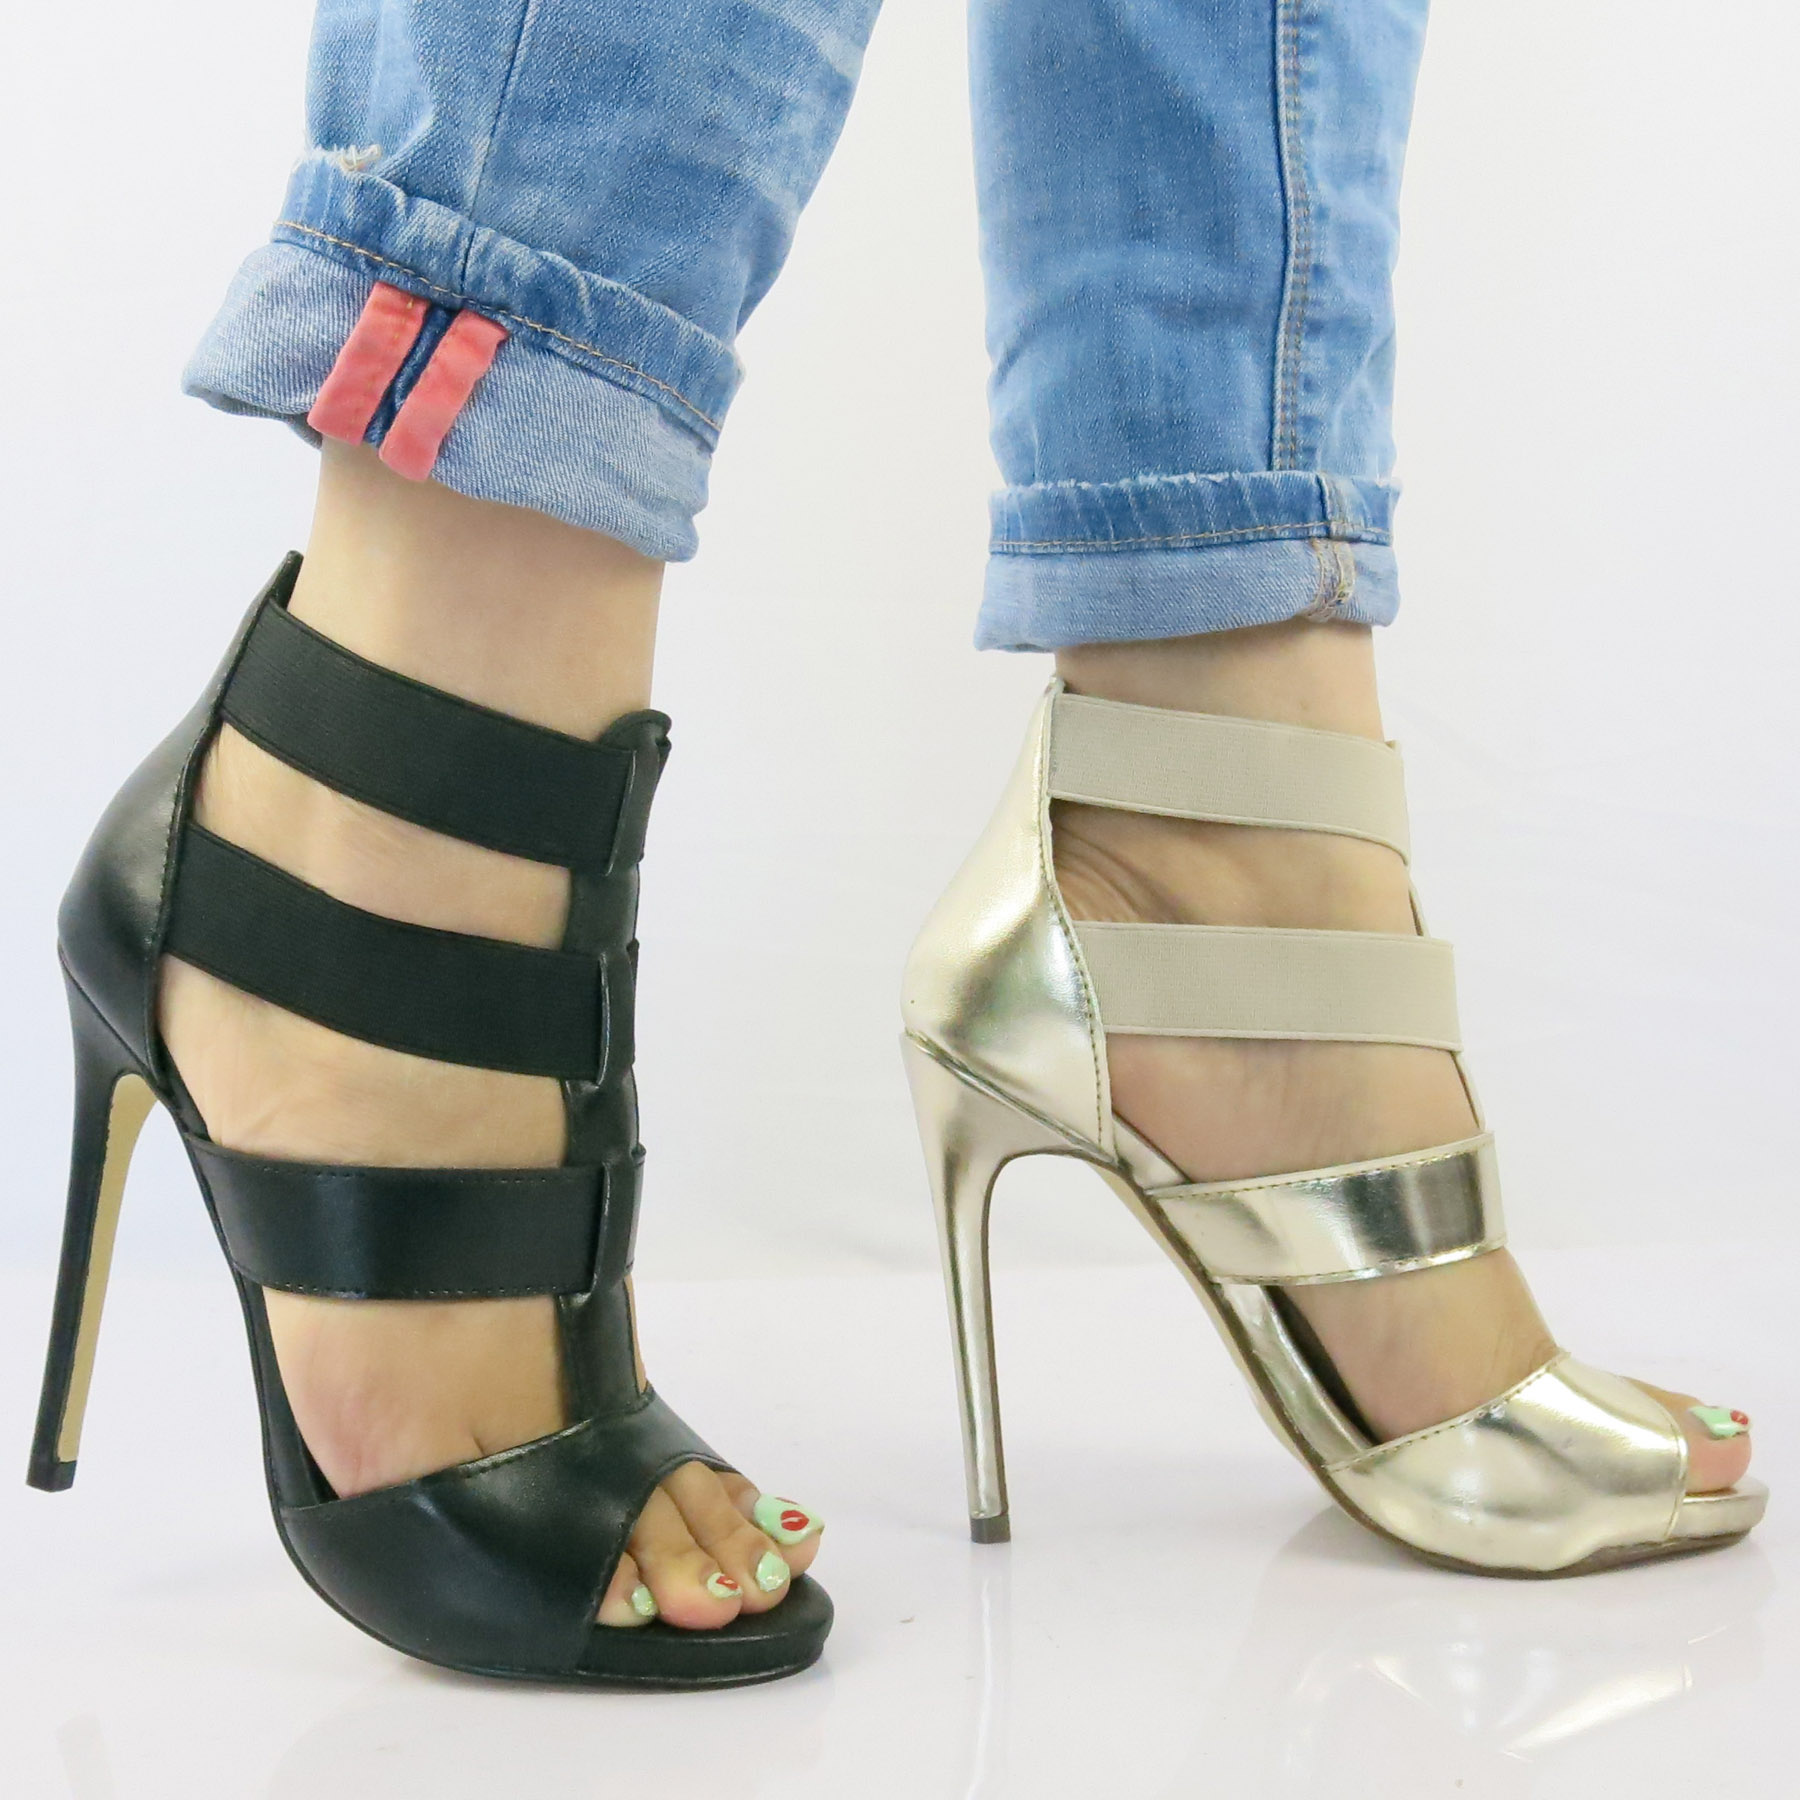 sandale a talon sexy gladiator sandals women shoes high. Black Bedroom Furniture Sets. Home Design Ideas